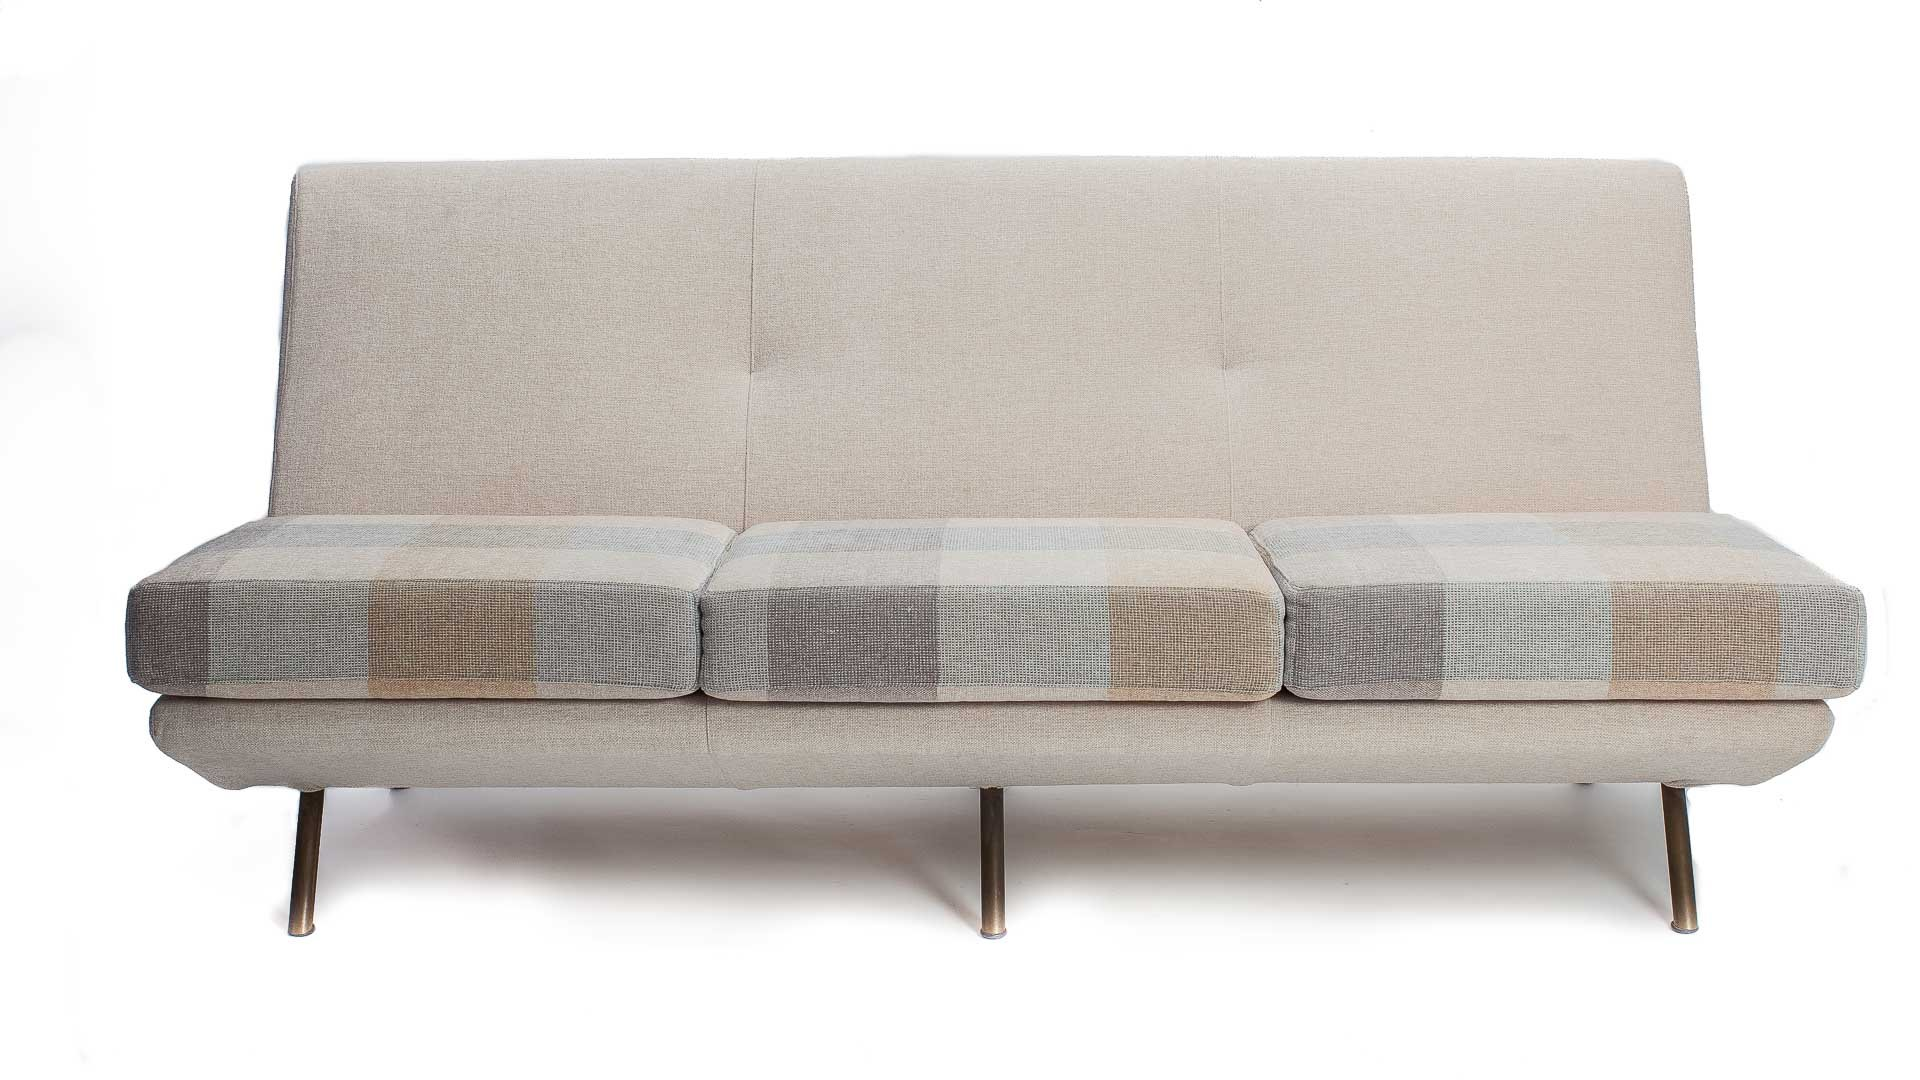 marco cream chaise sofa by factory outlet queen bed with storage italian triennale zanuso for arflex 1951 sale at